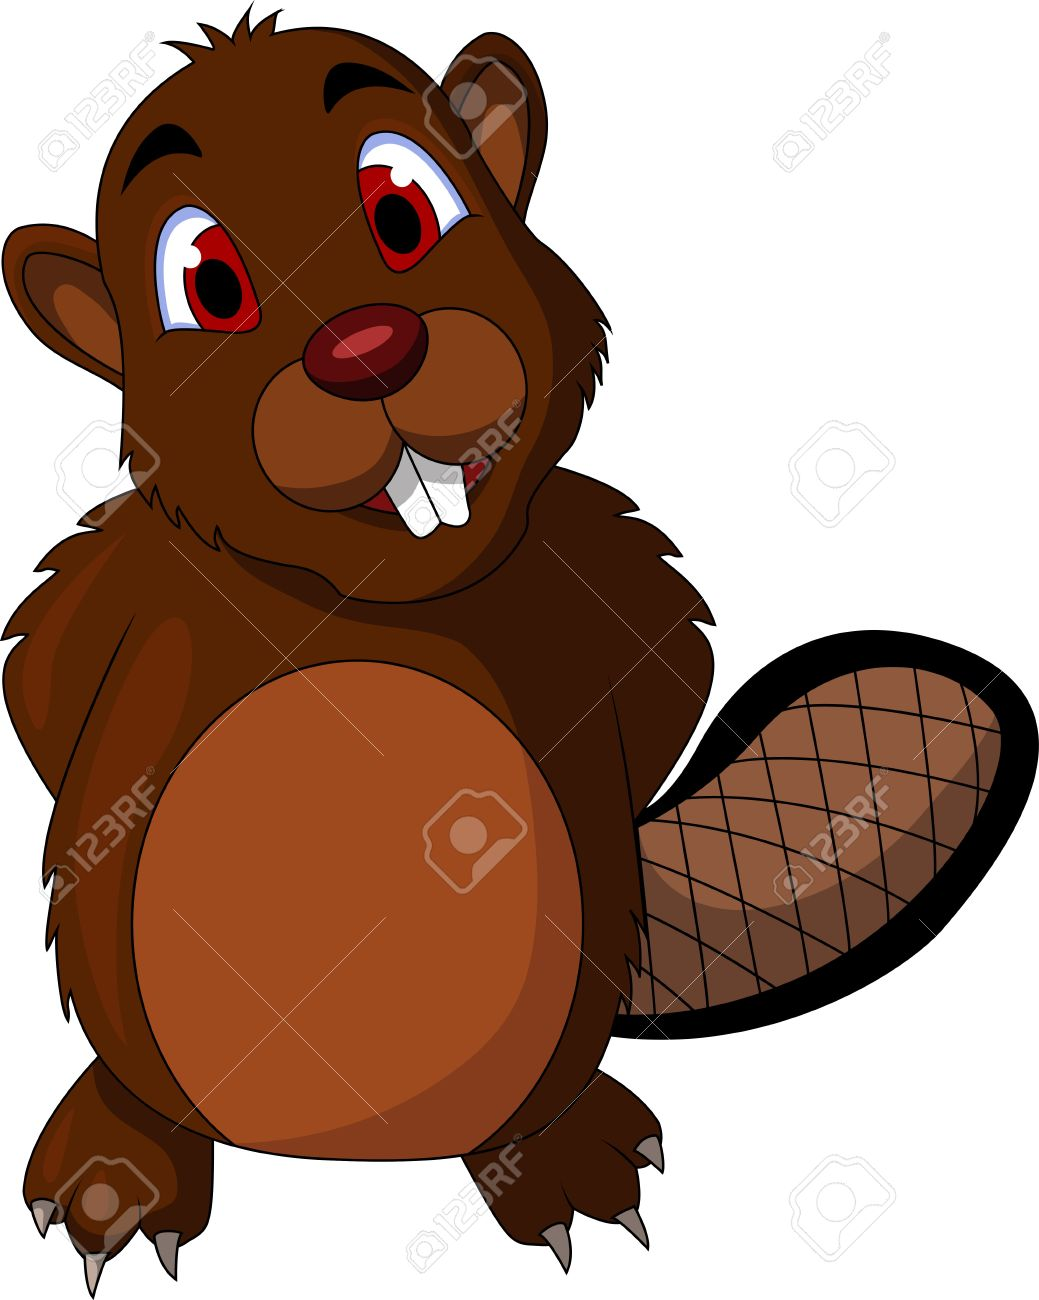 Beaver tail clipart.